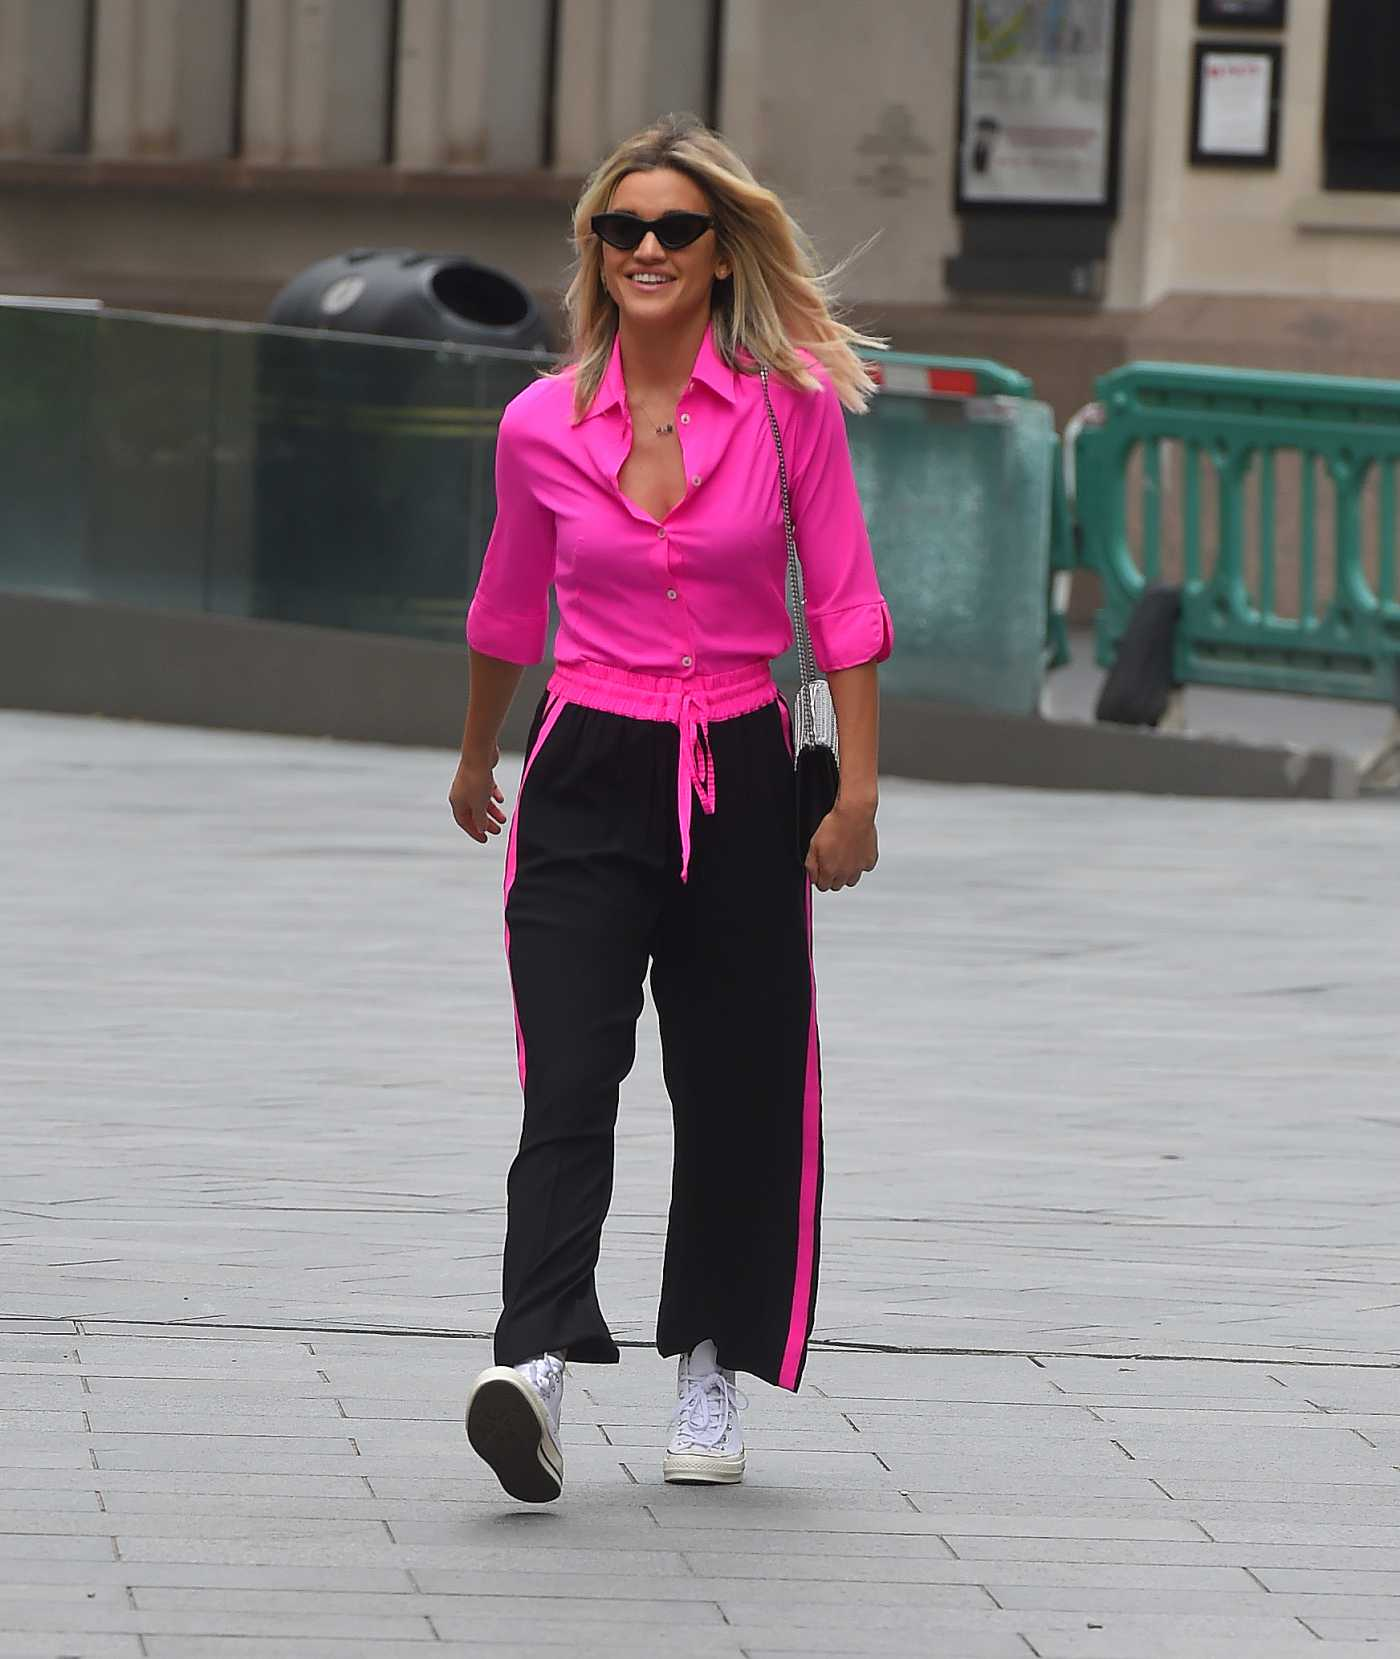 Ashley Roberts in a Neon Pink Blouse Leaves the Global Radio Studios in London 06/10/2020